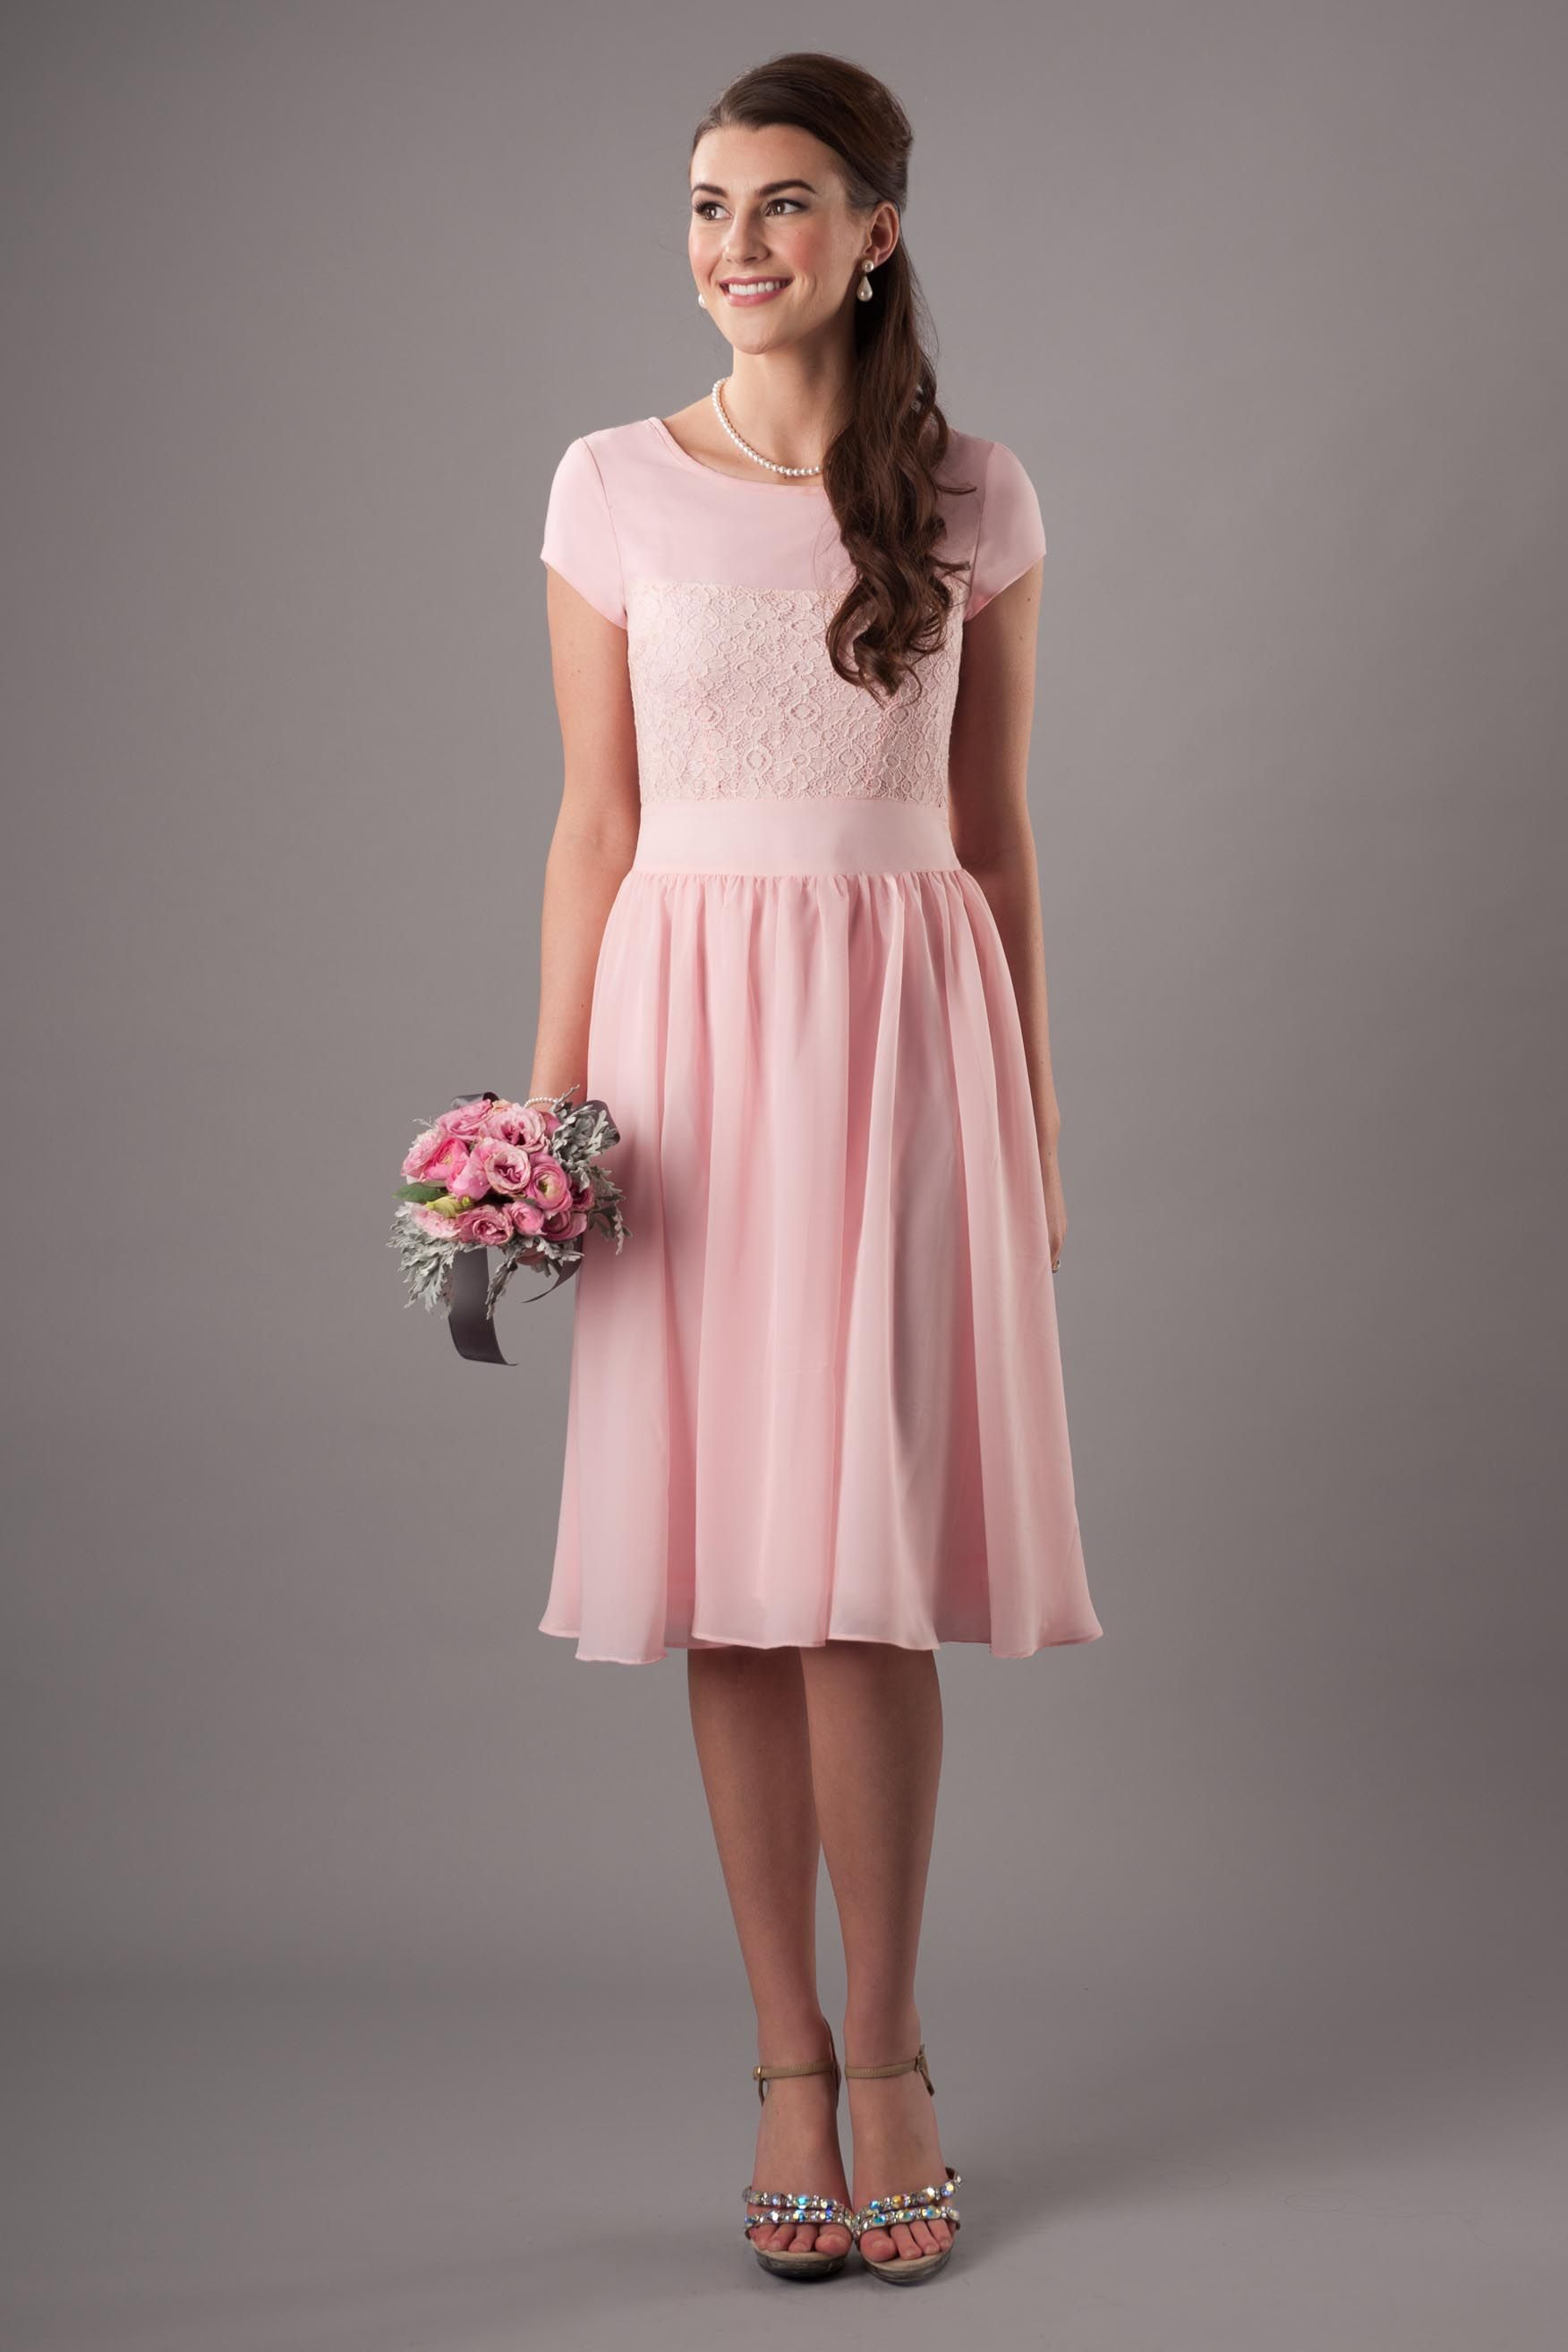 MDS 001 - Modest Bridesmaid Dress | Modest Bridesmaid Dresses ...